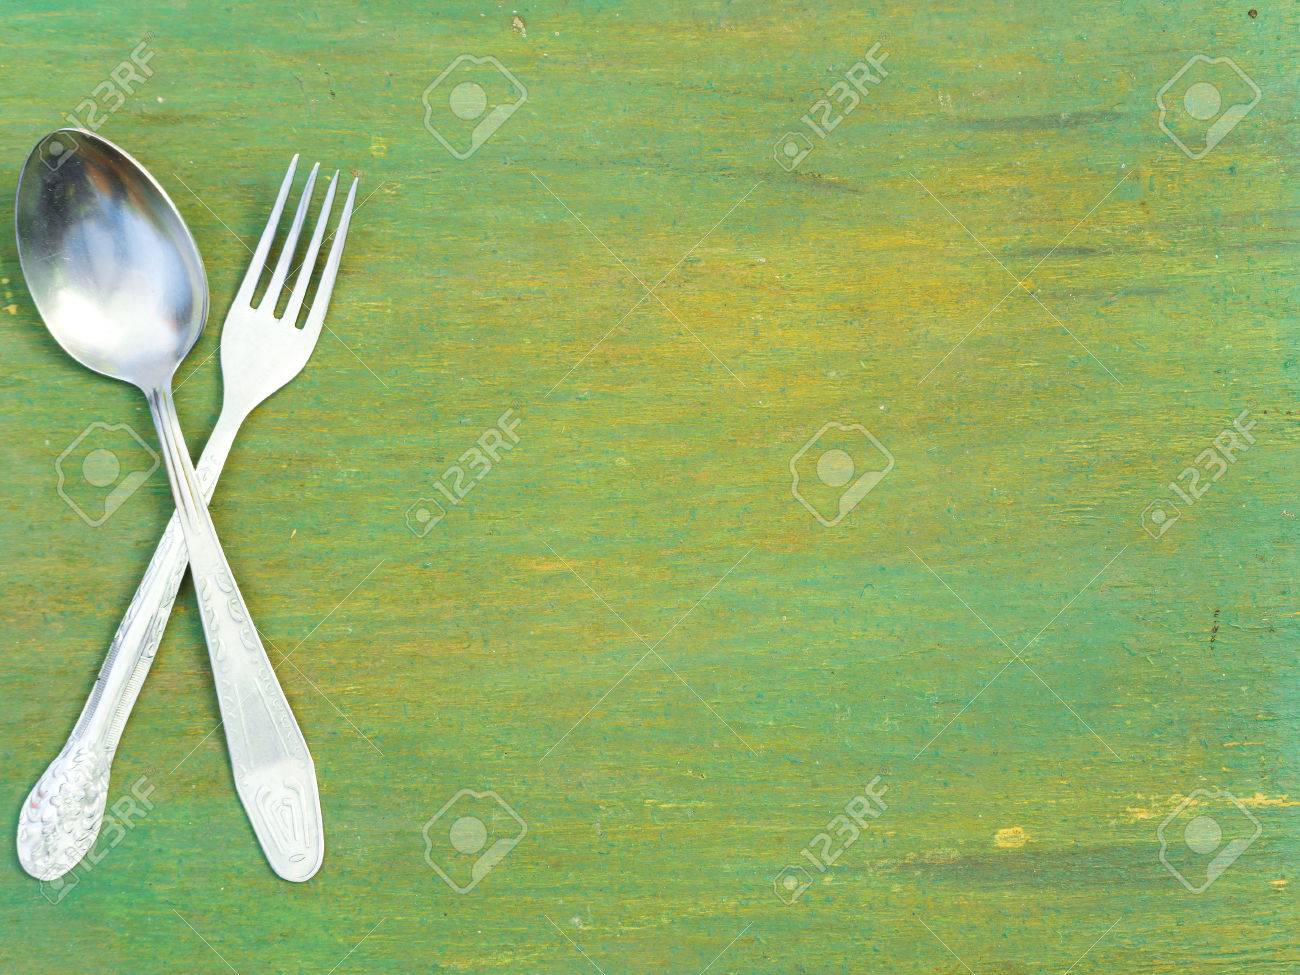 Fork and spoon on old wooden table. Vintage texture, background. Menu. - 50884776